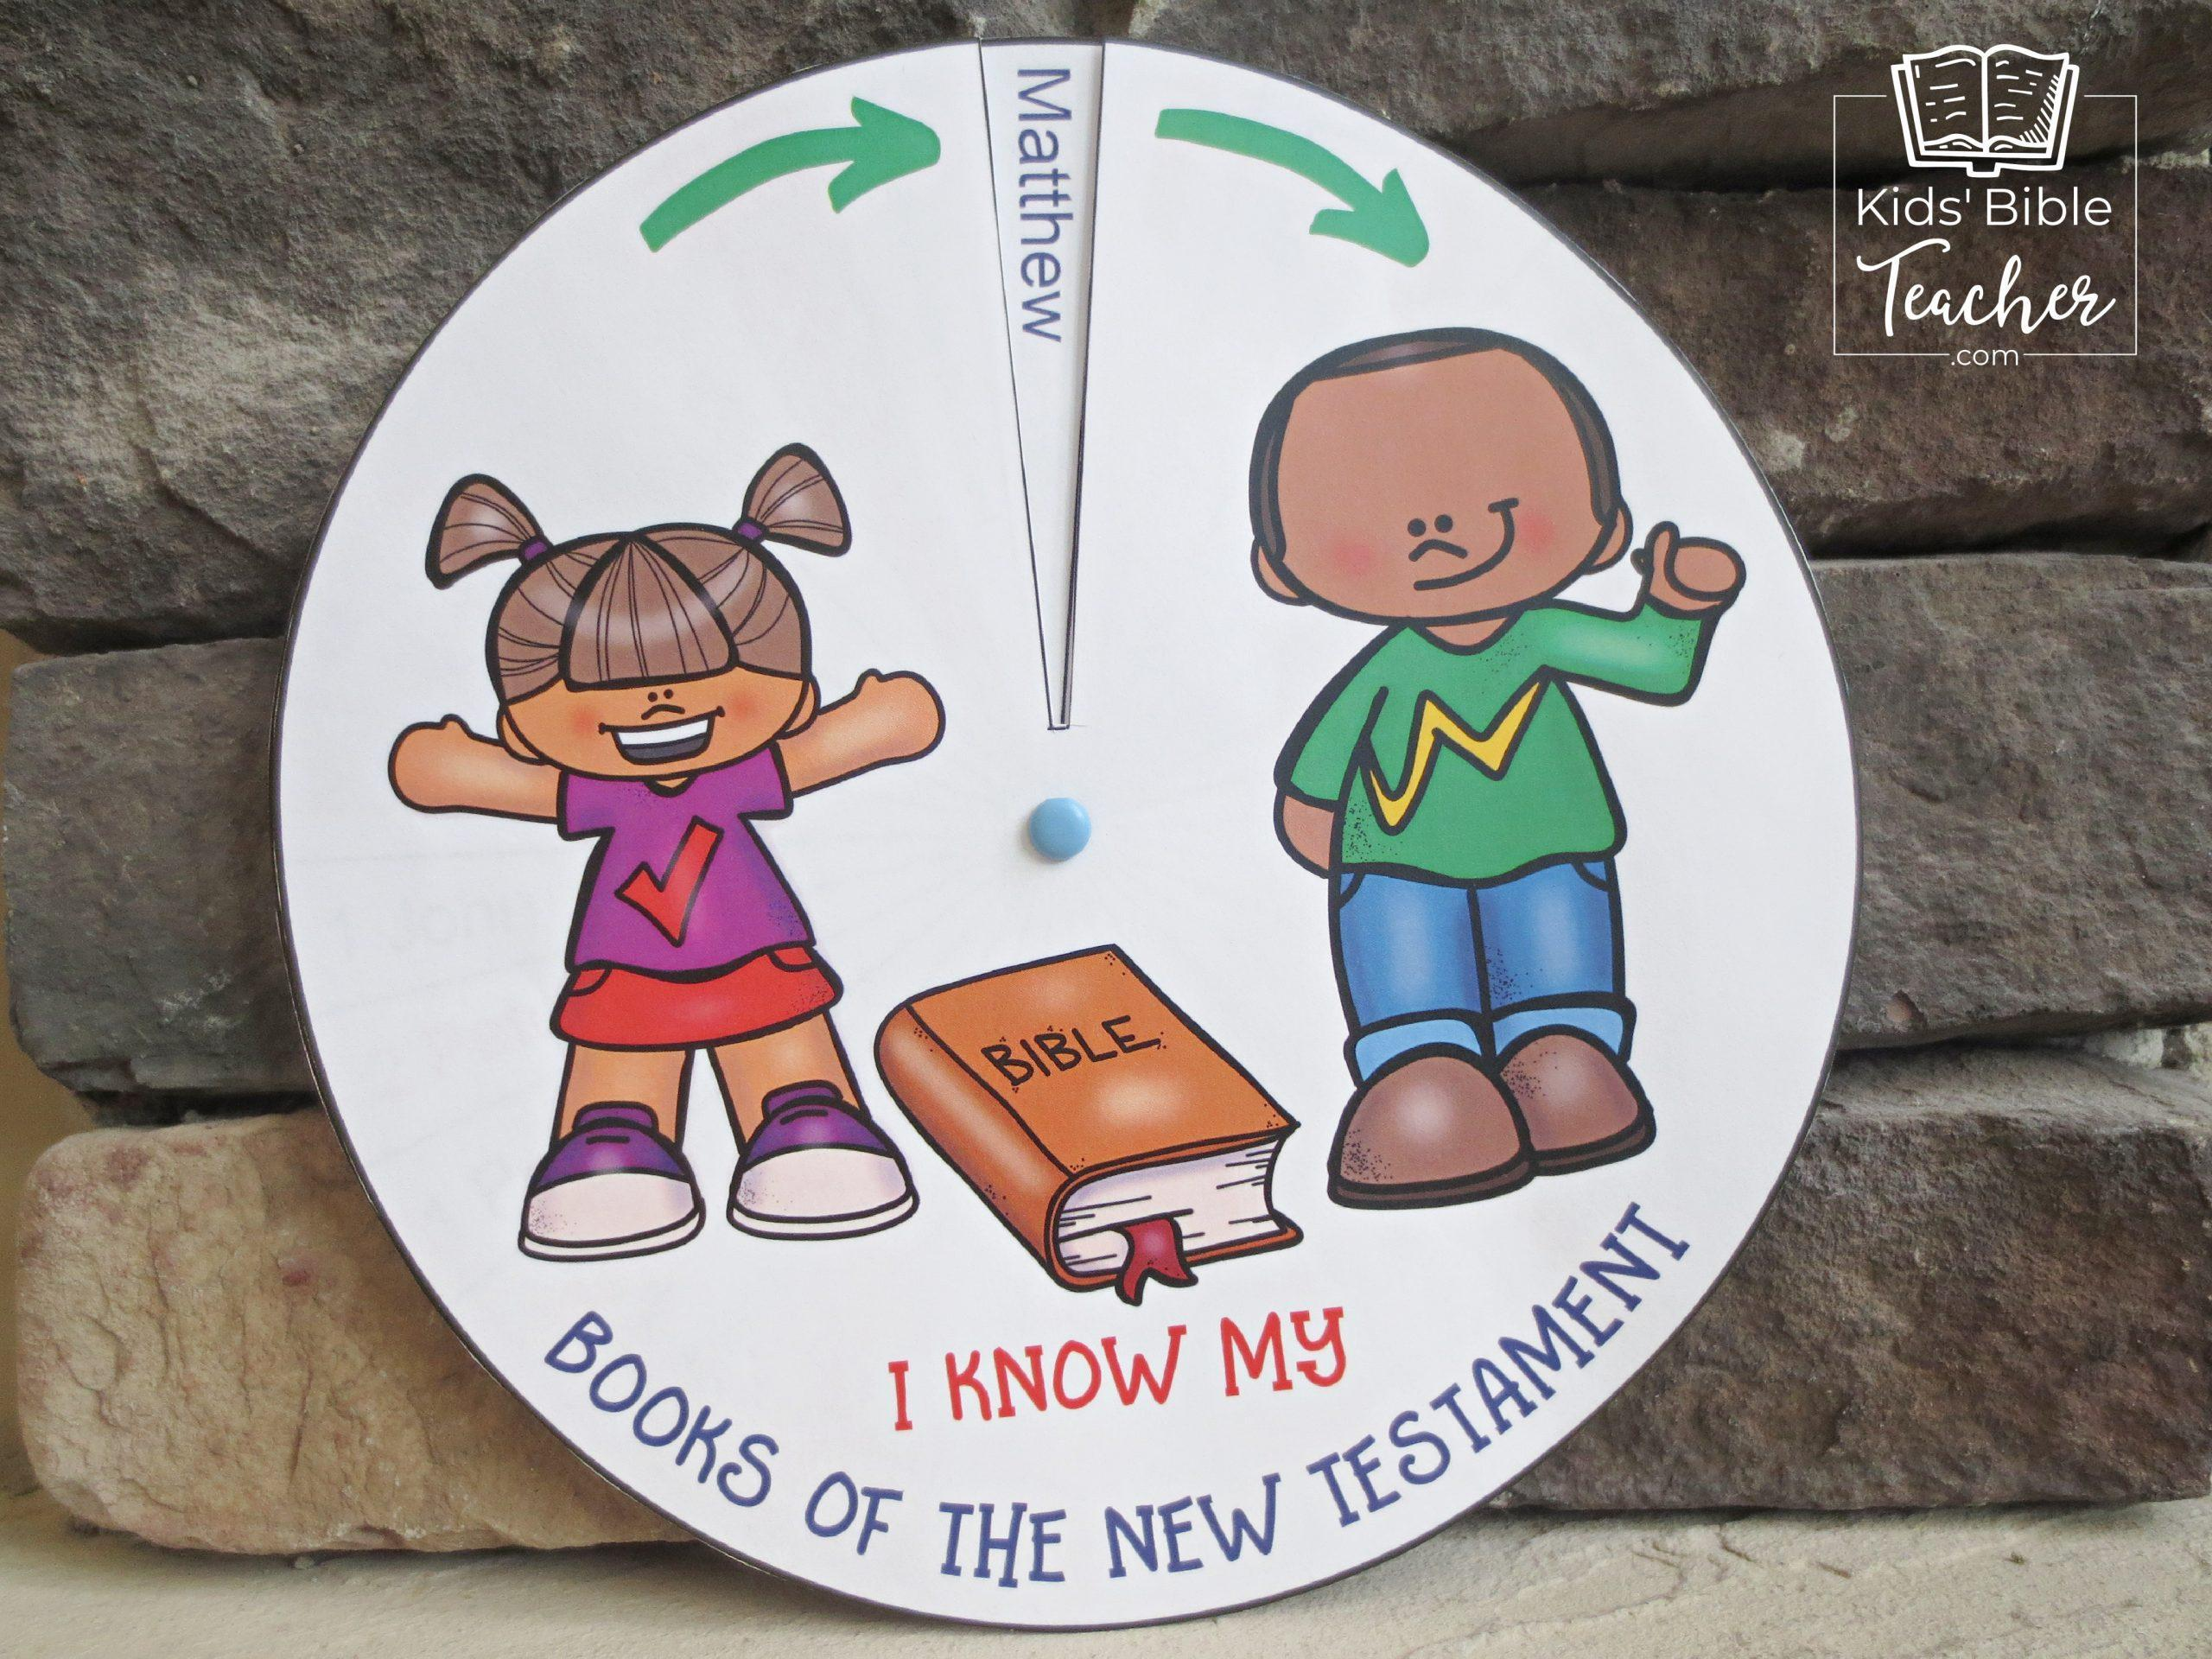 The Books of the Bible New Testament Spinner is easy to make, fun to play with, and will help your kids learn the New Testament books. | KidsBibleTeacher.com